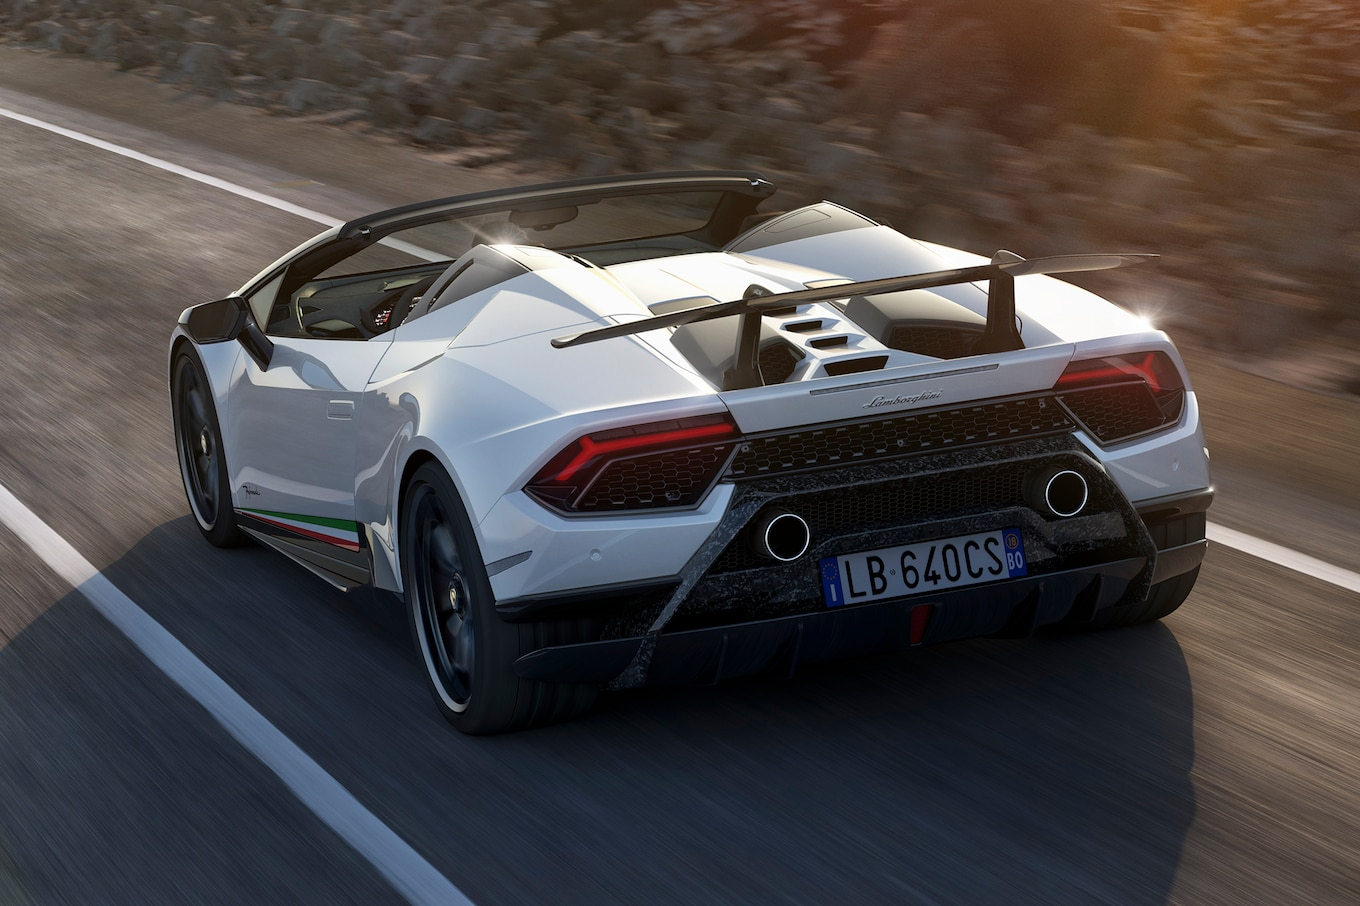 Like The Coupe, The Huracan Performante Spyder Is Powered By A 5.2 Liter  V 10 Good For 630 Hp And 443 Lb Ft Of Torque. Unlike Most Of Its  Competitors, ...